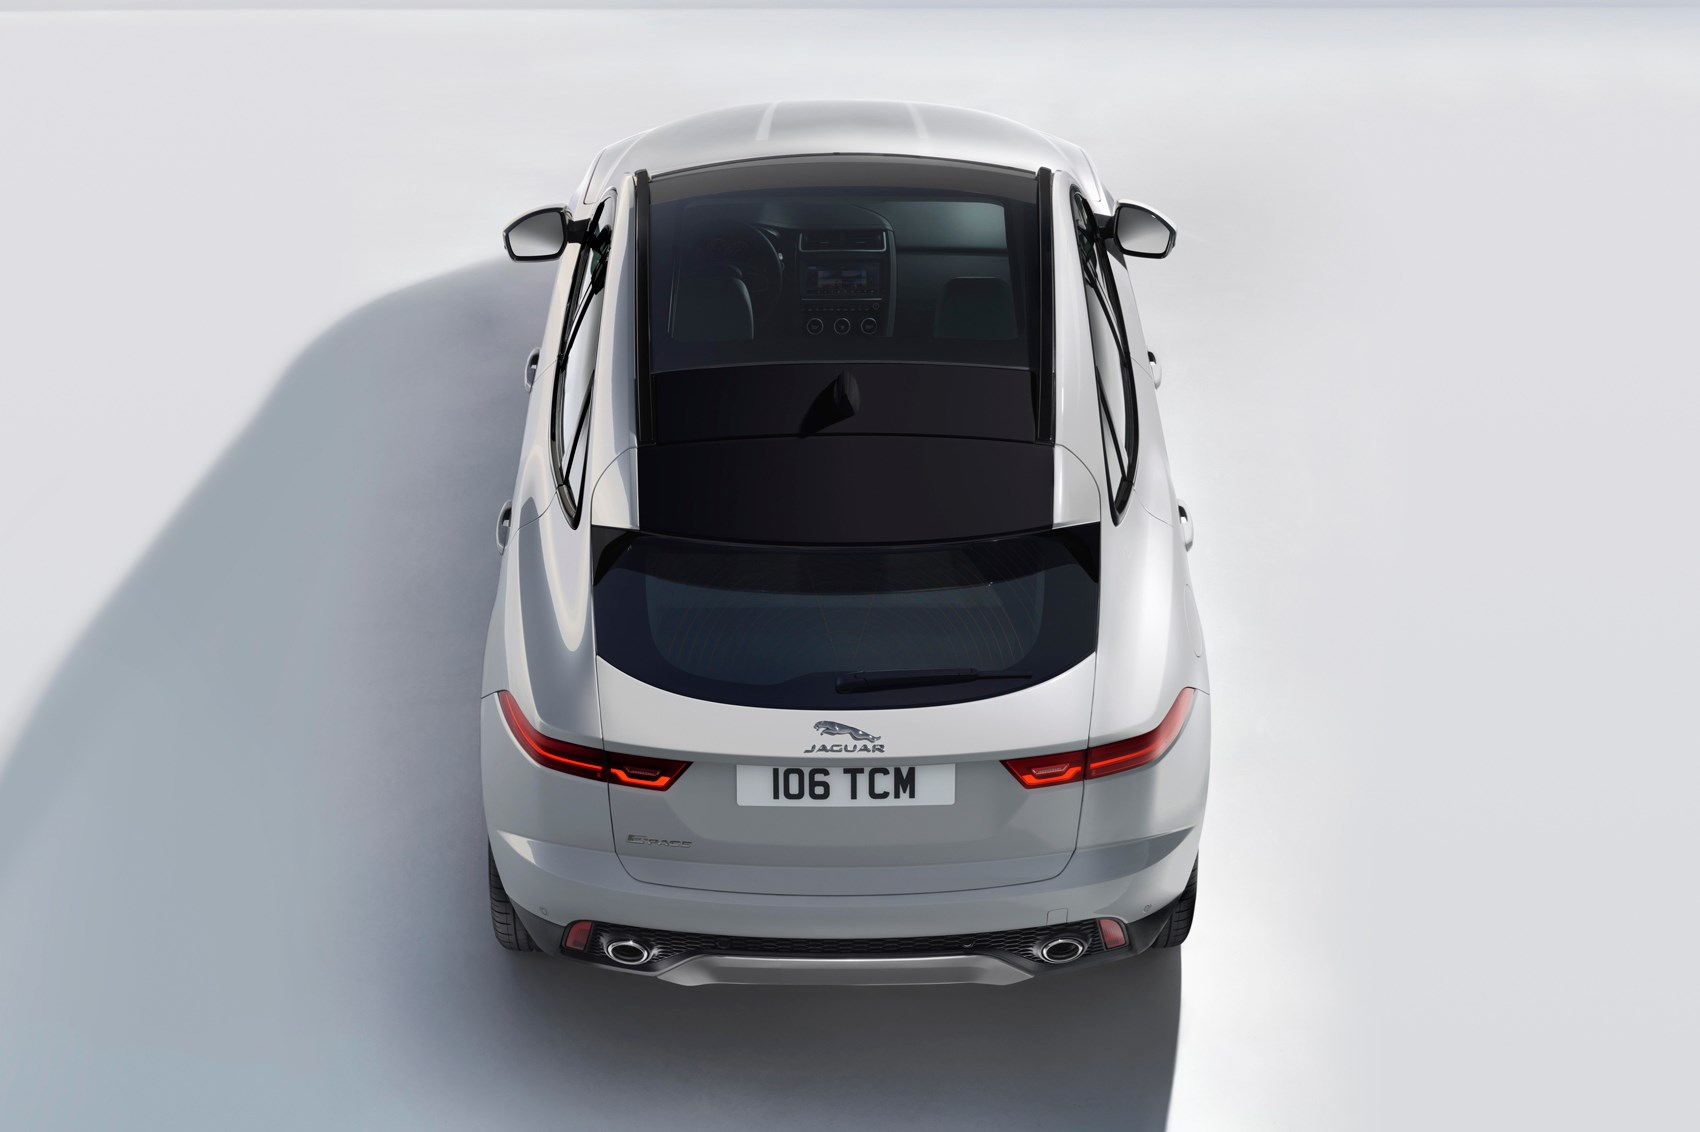 jaguar e pace gets techy upgrade car magazine. Black Bedroom Furniture Sets. Home Design Ideas